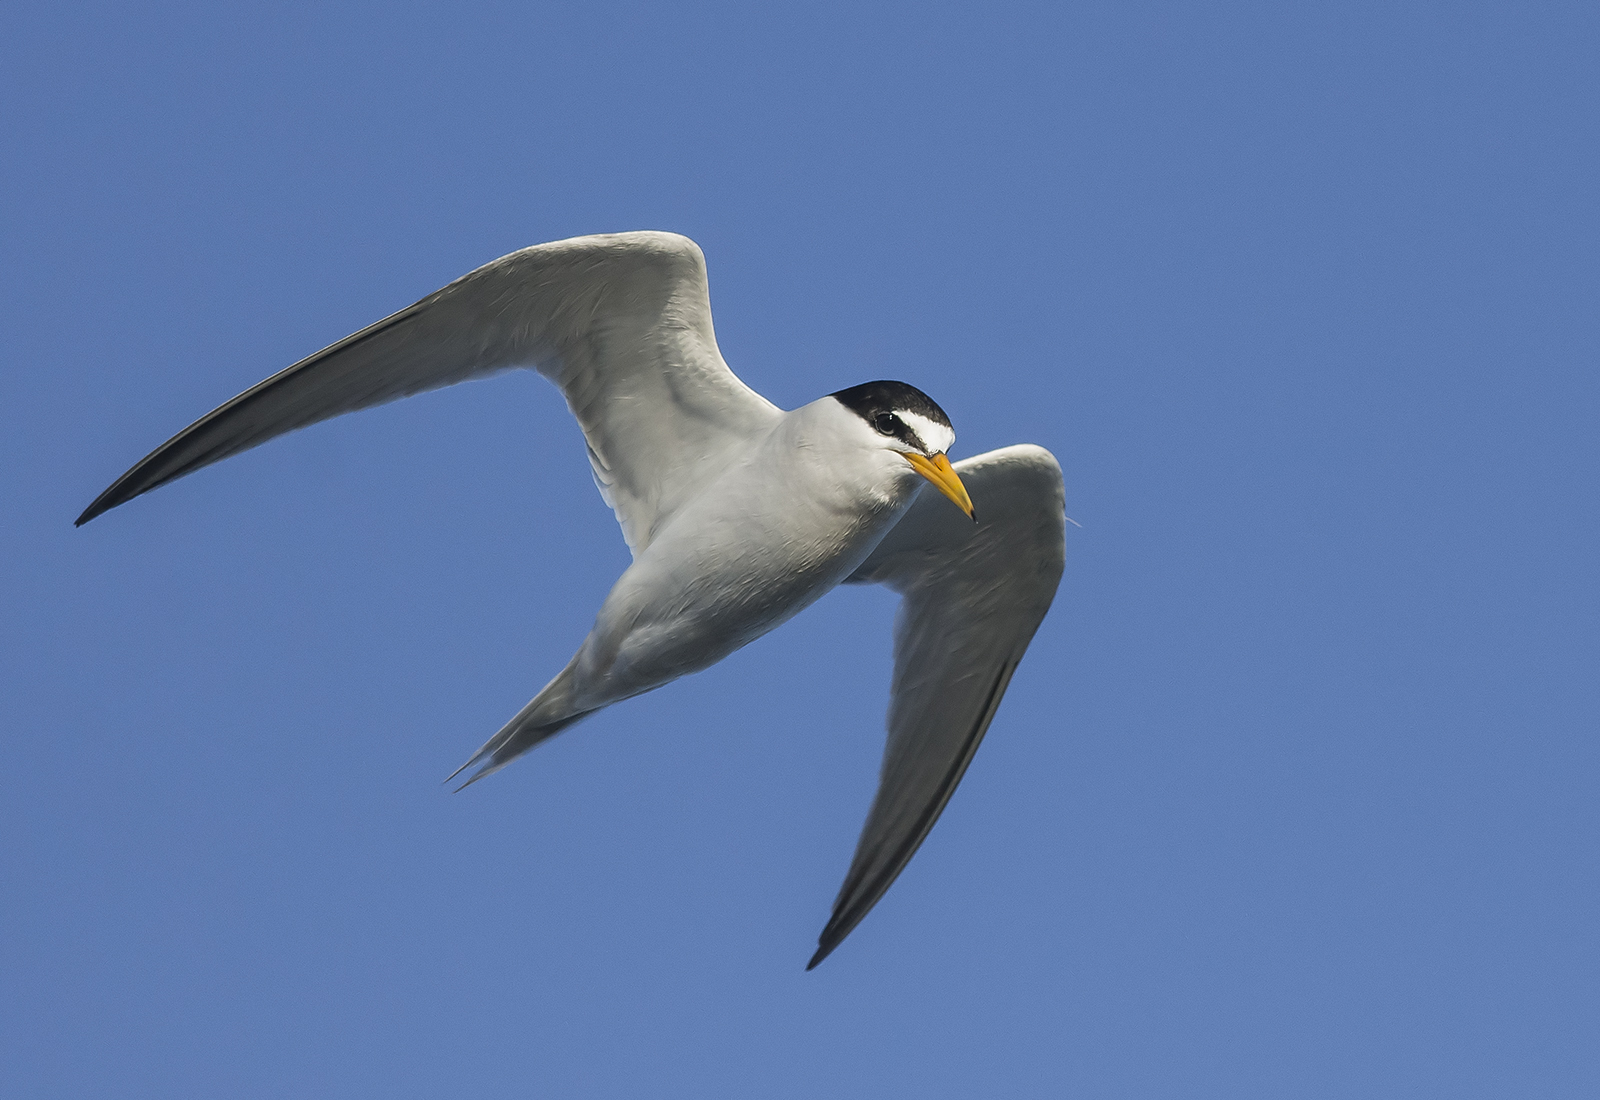 California Least Tern, listed as Endangered under the U.S. Endangered Species Act. (Photo courtesy of Jerry Ting)